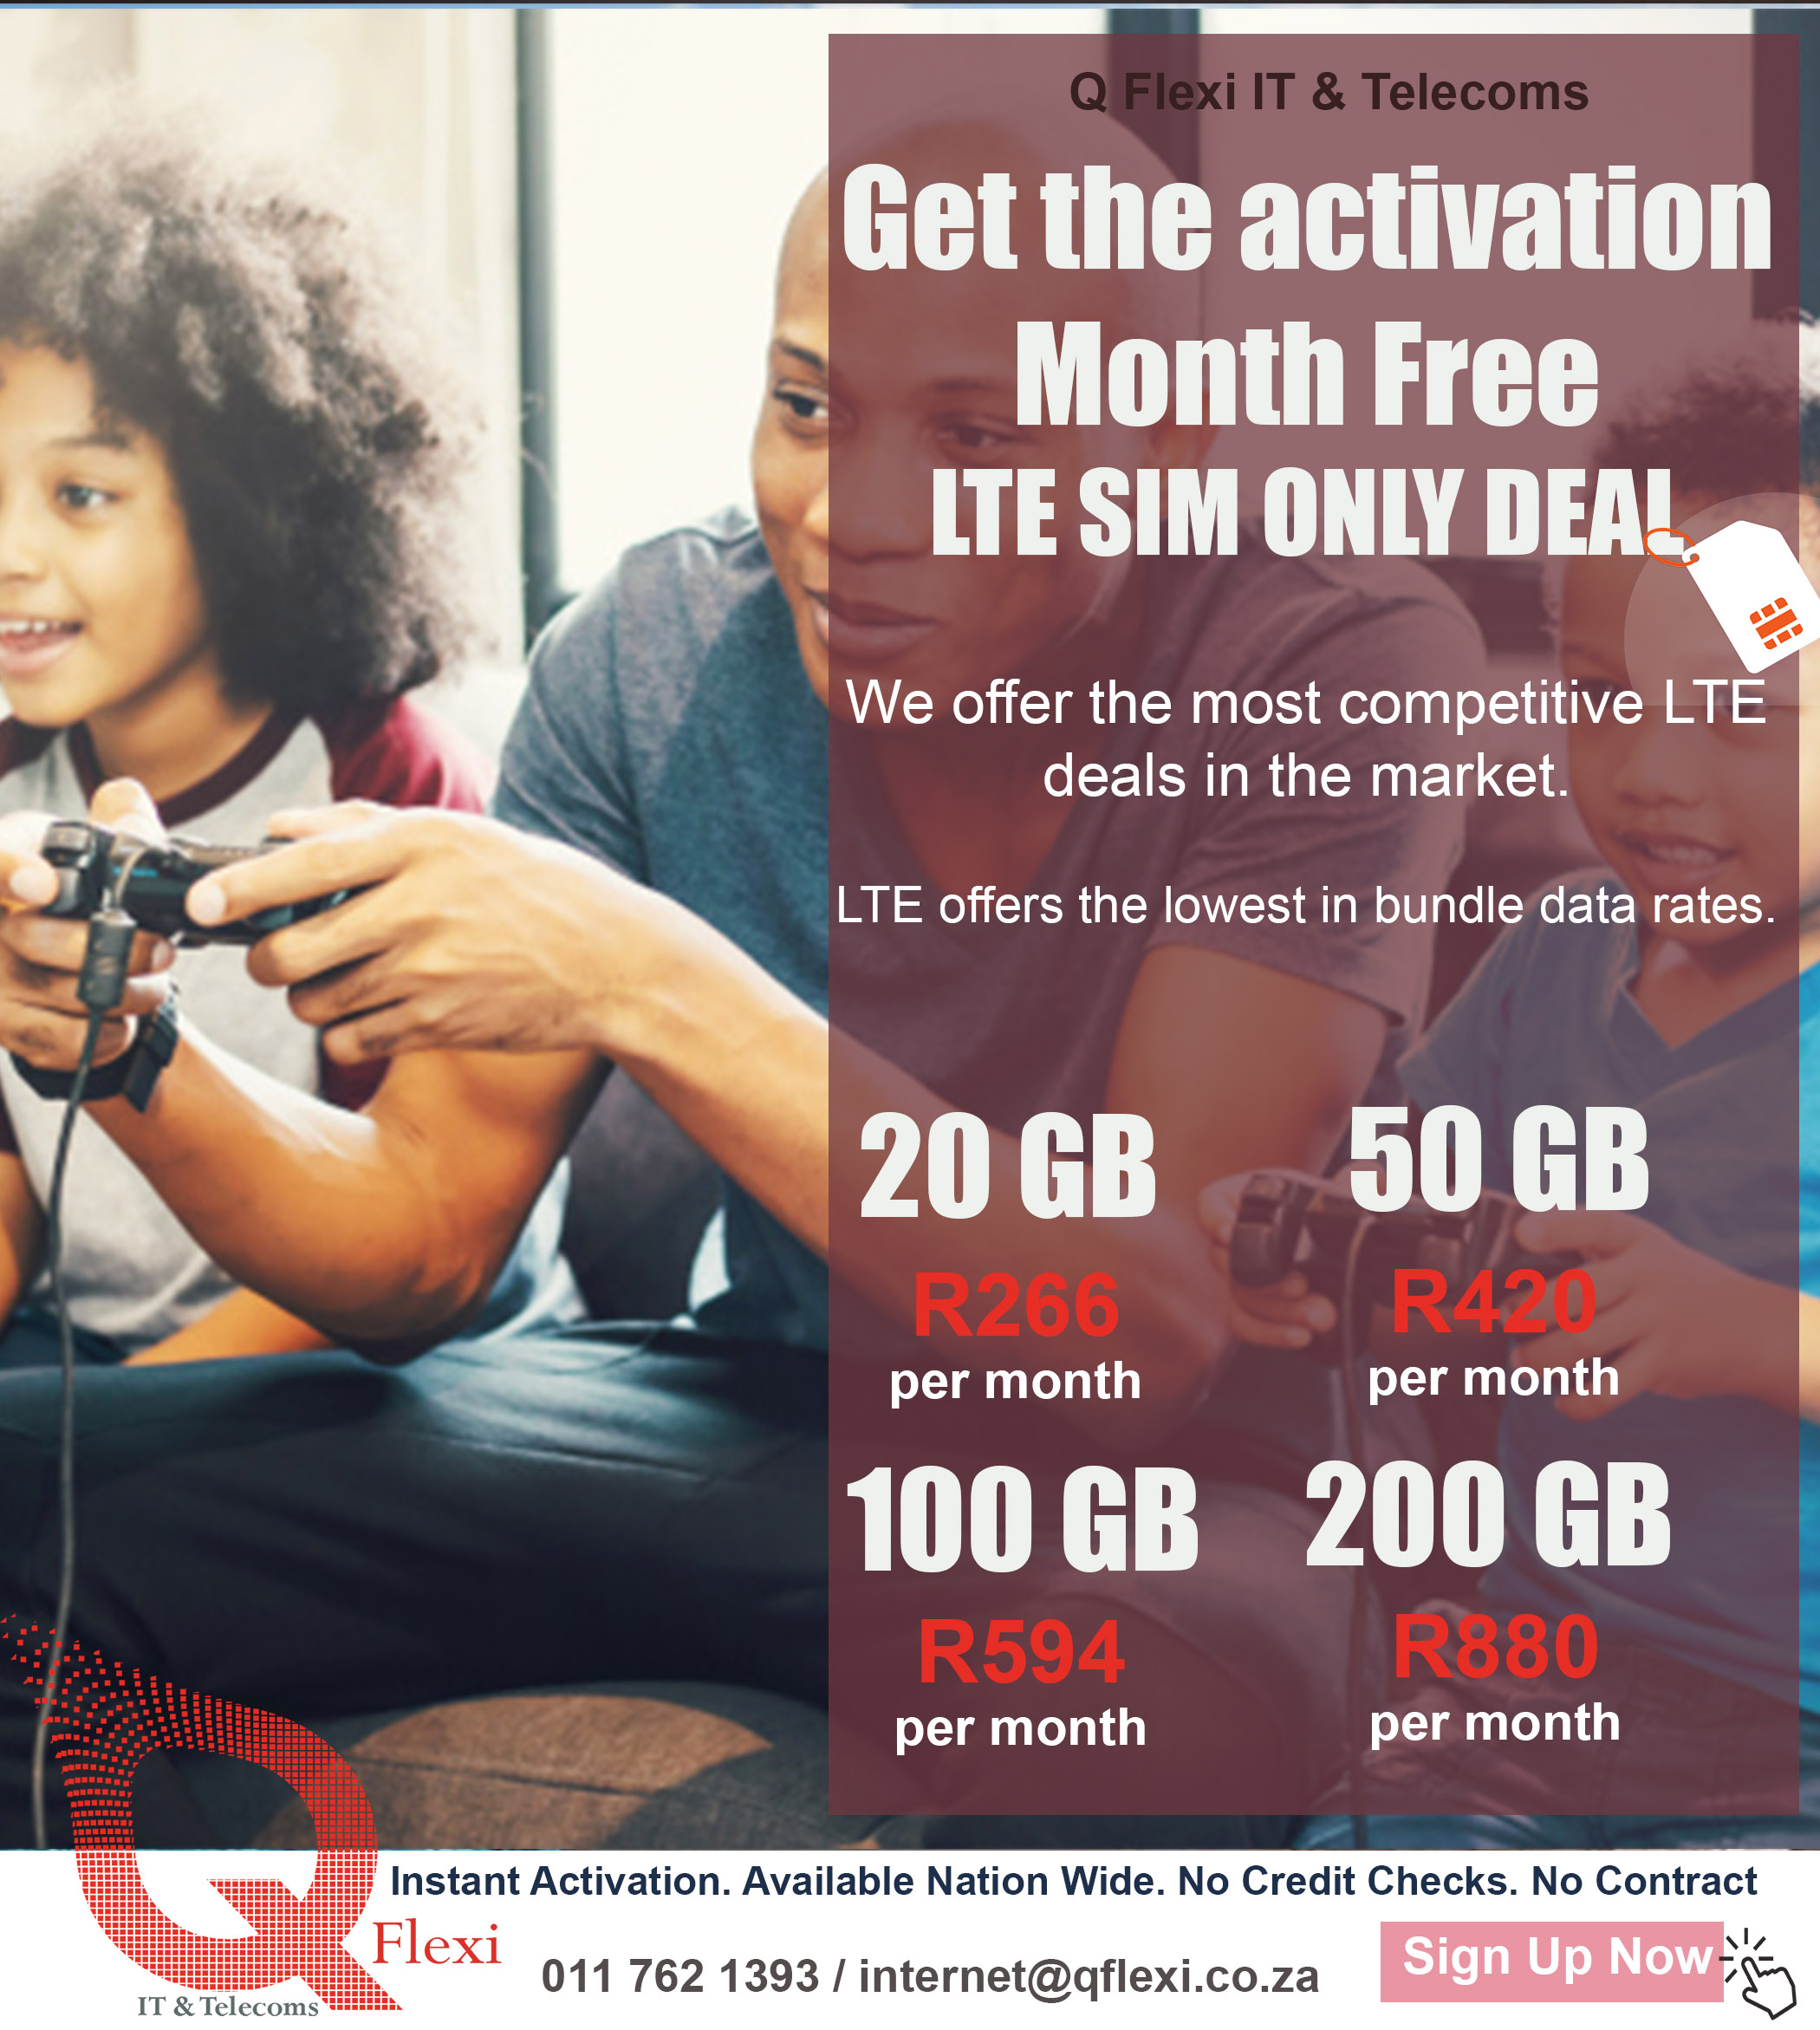 CELL C1